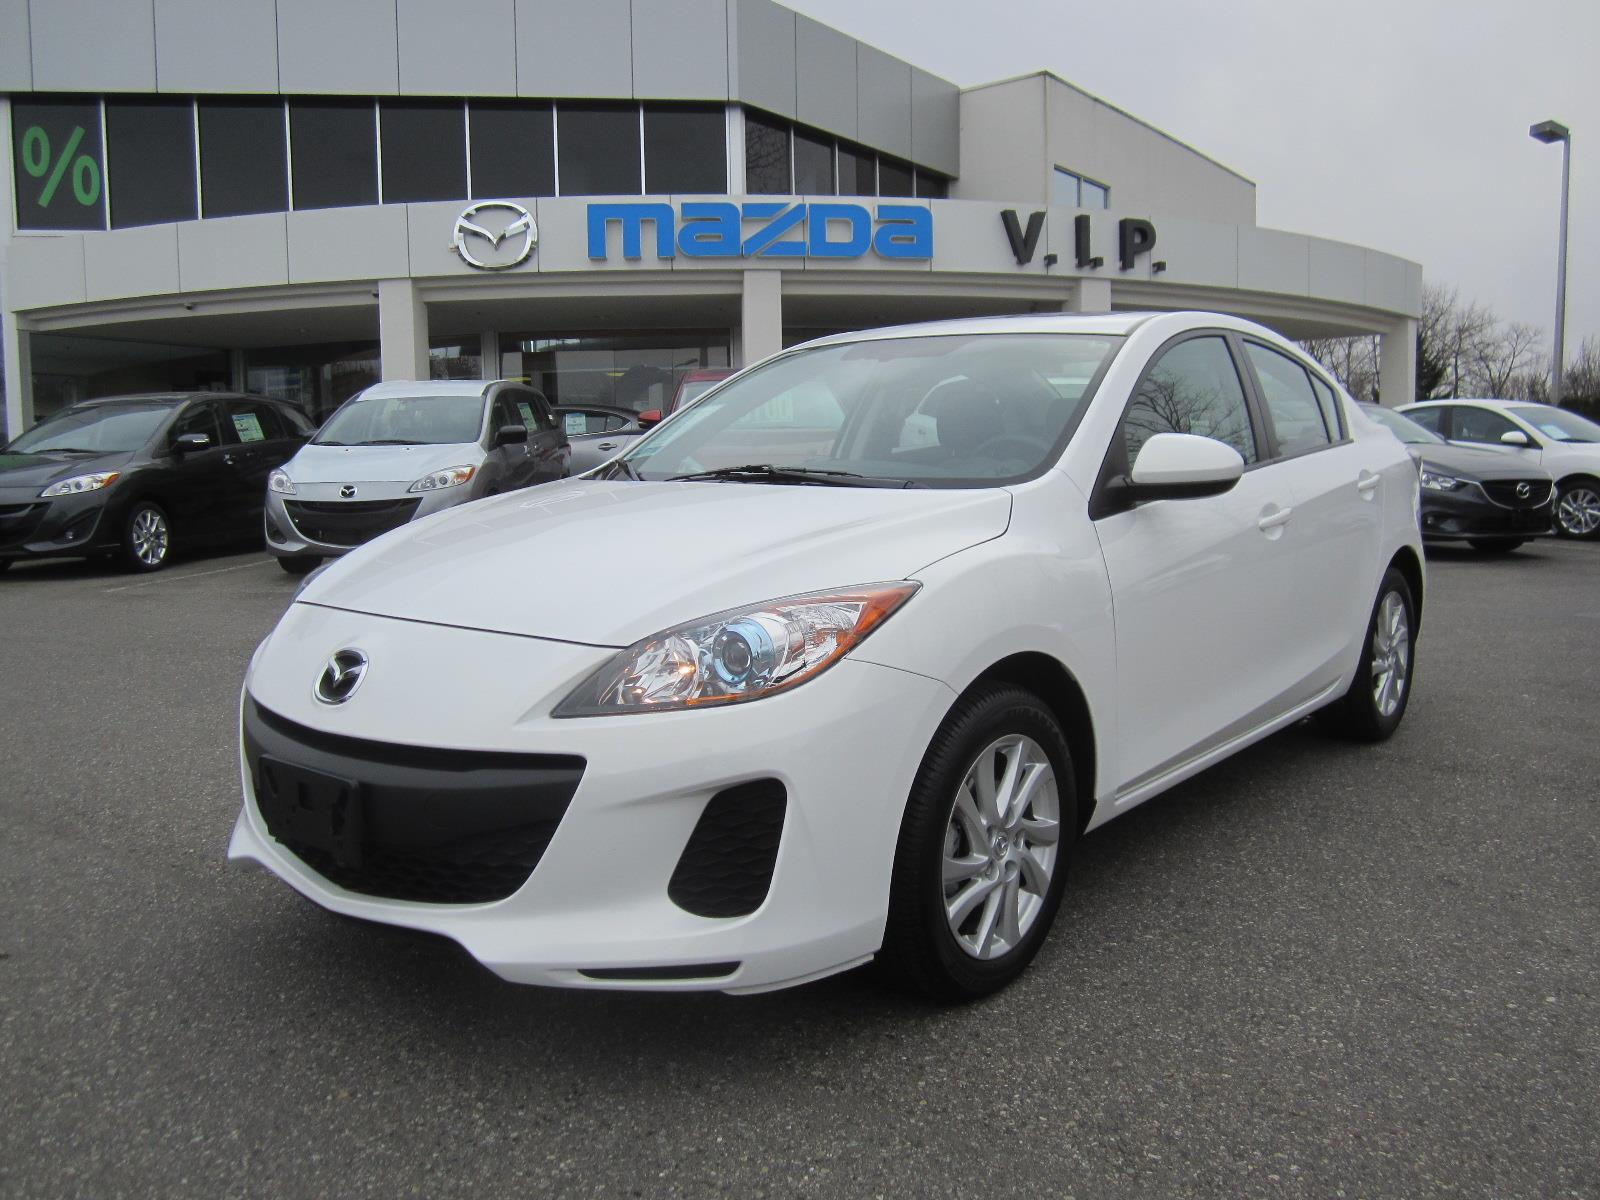 Used Mazda 3 2012 review sport for sale free image editor Wallpaper